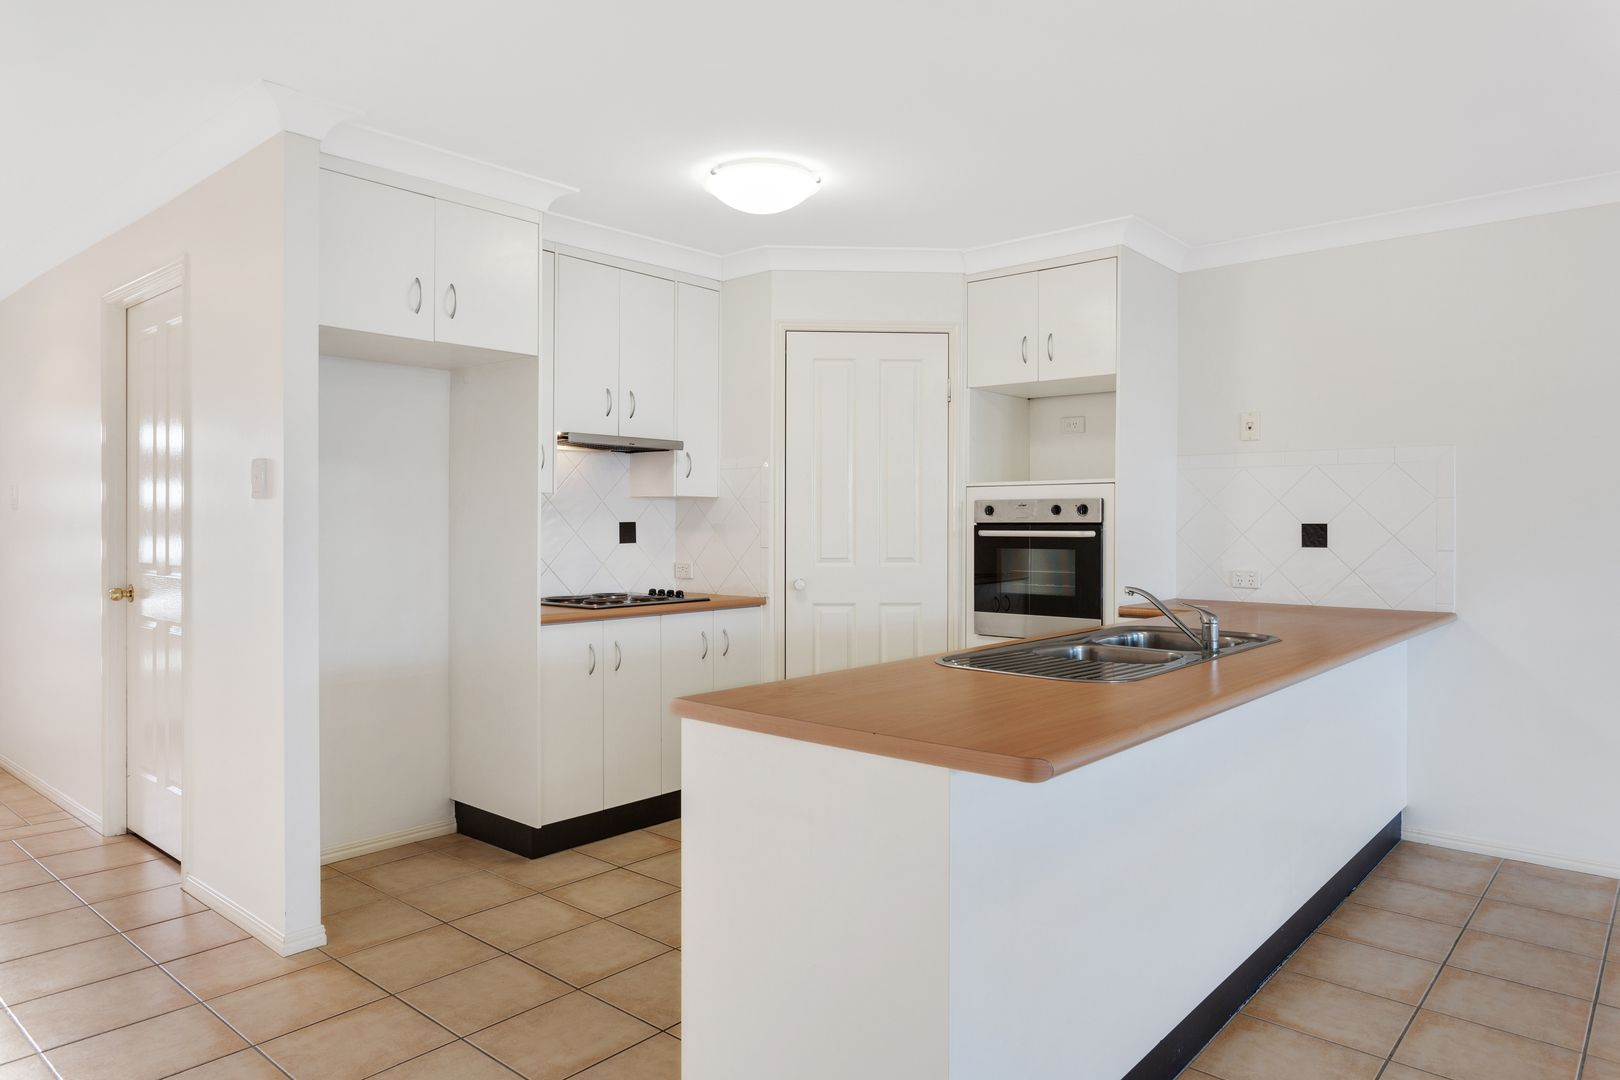 2/26 Hoepper Street, South Toowoomba QLD 4350, Image 2